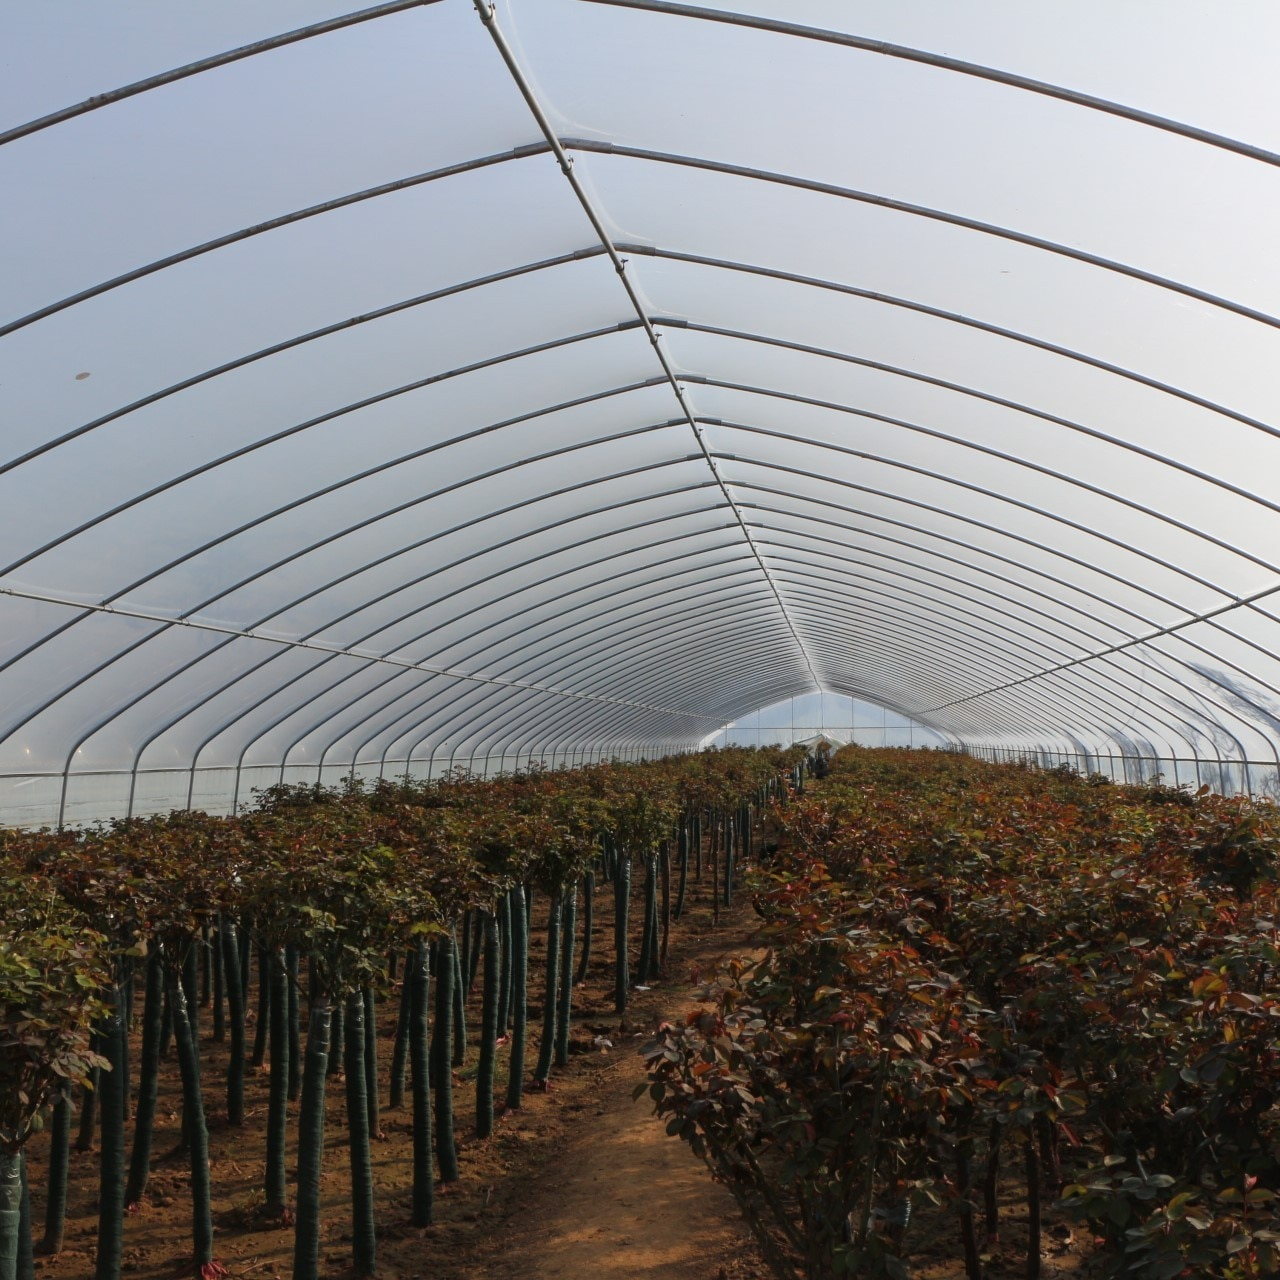 Very strong frame and film for agricultural vegetable greenhouse garden